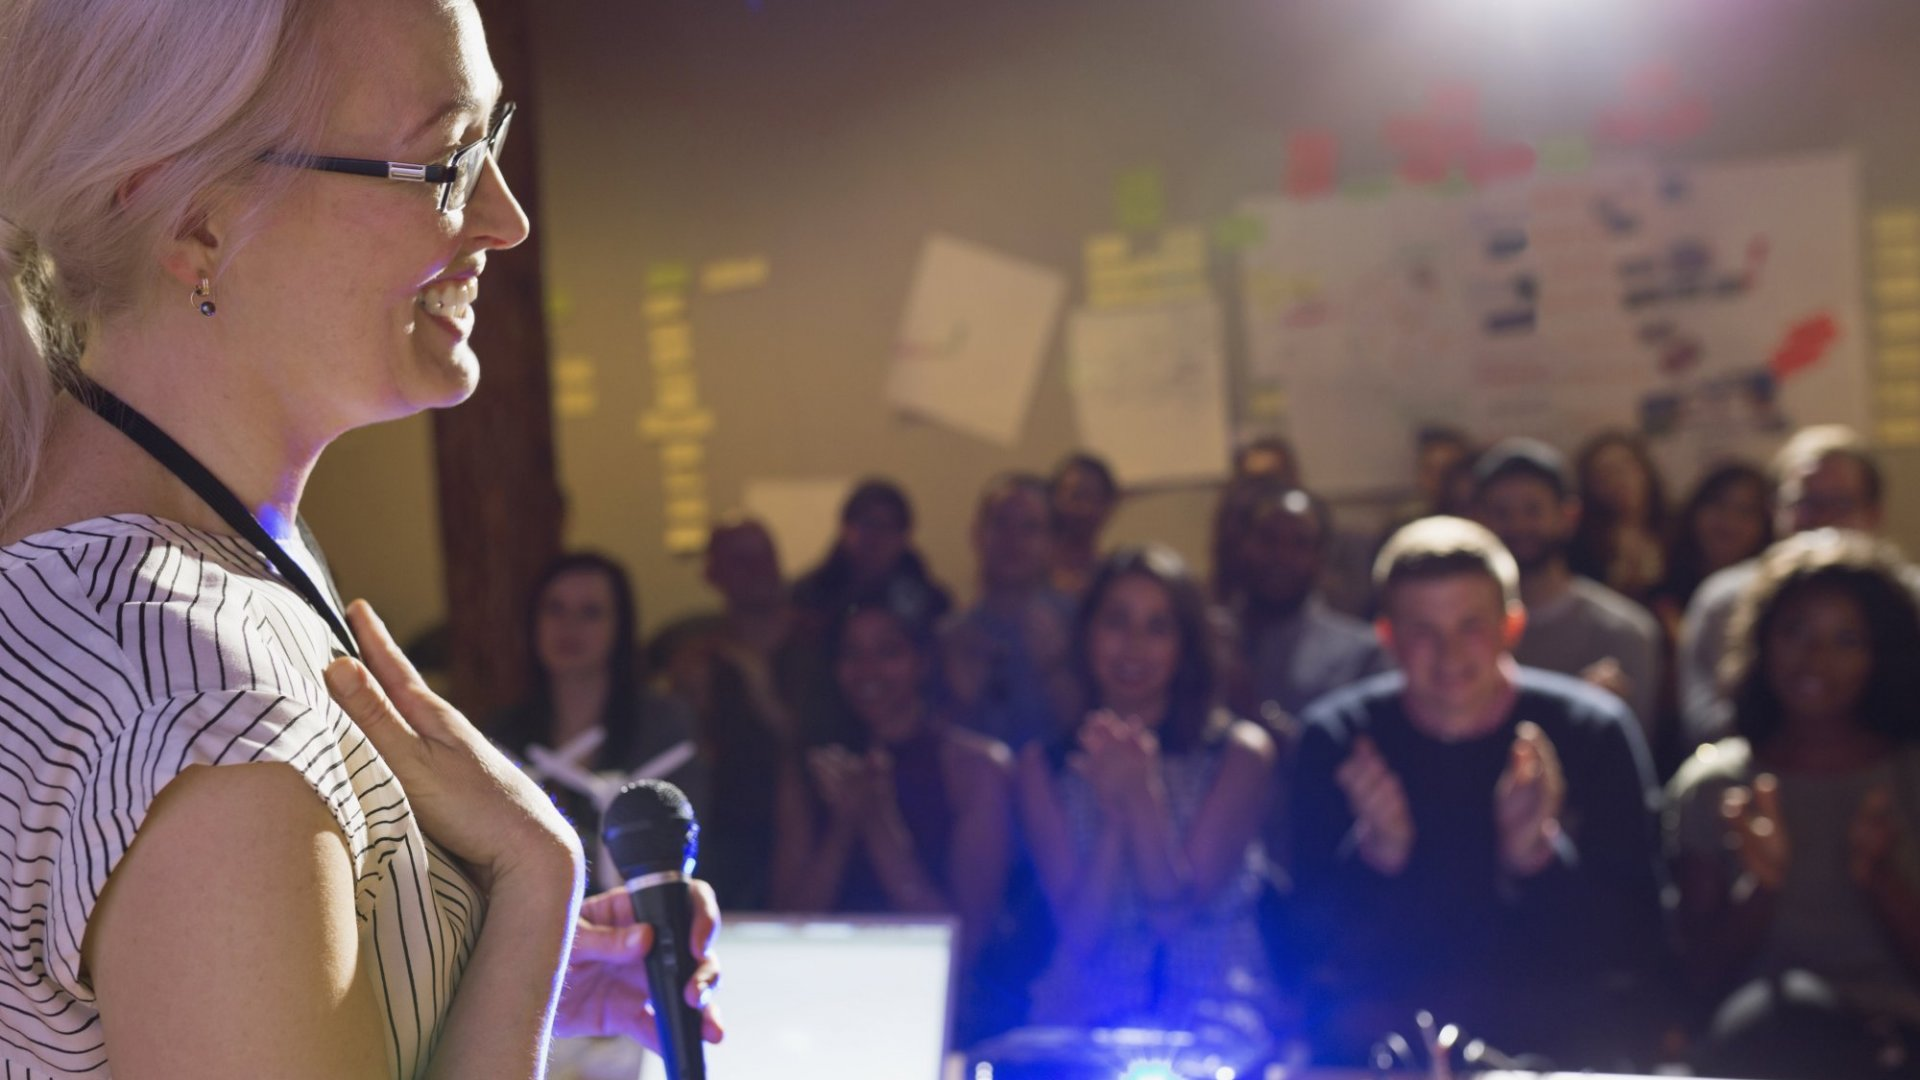 You don't need to fear public speaking any longer.